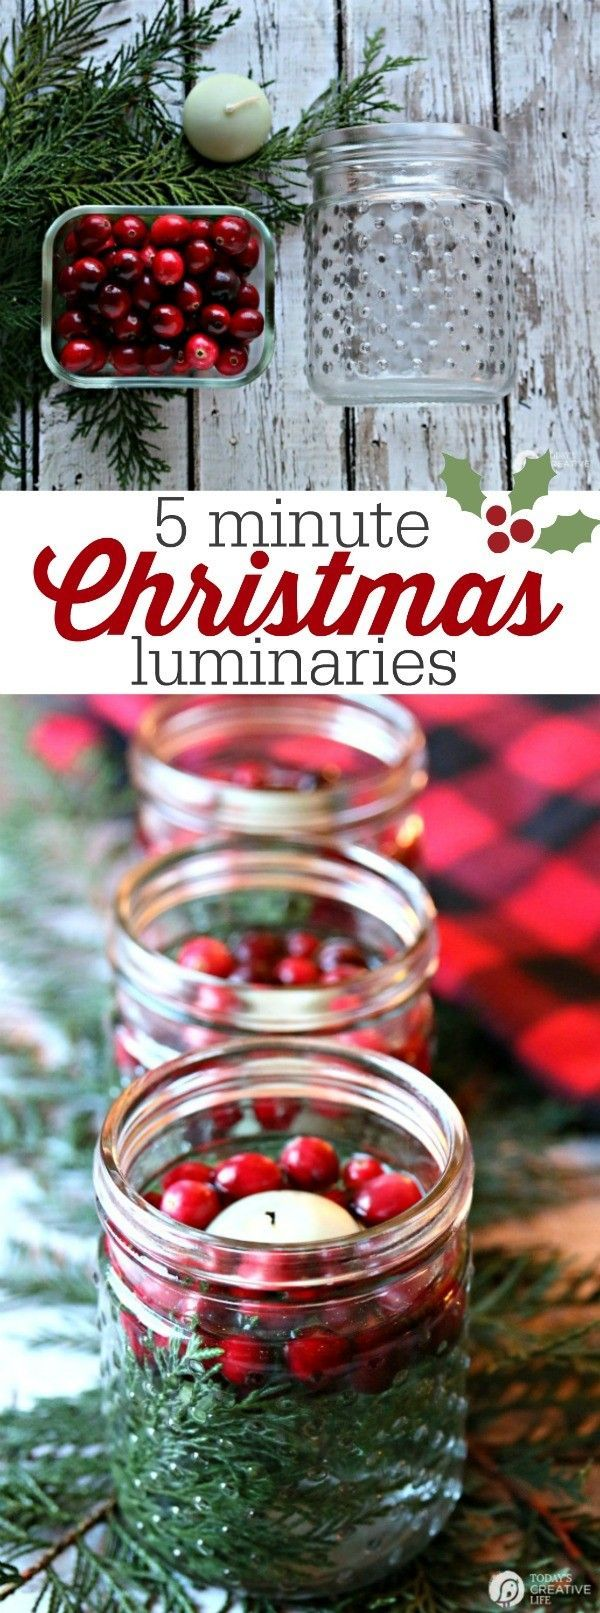 Christmas decoration ideas to make at home - 5 Minute Cranberry Cedar Christmas Luminaries